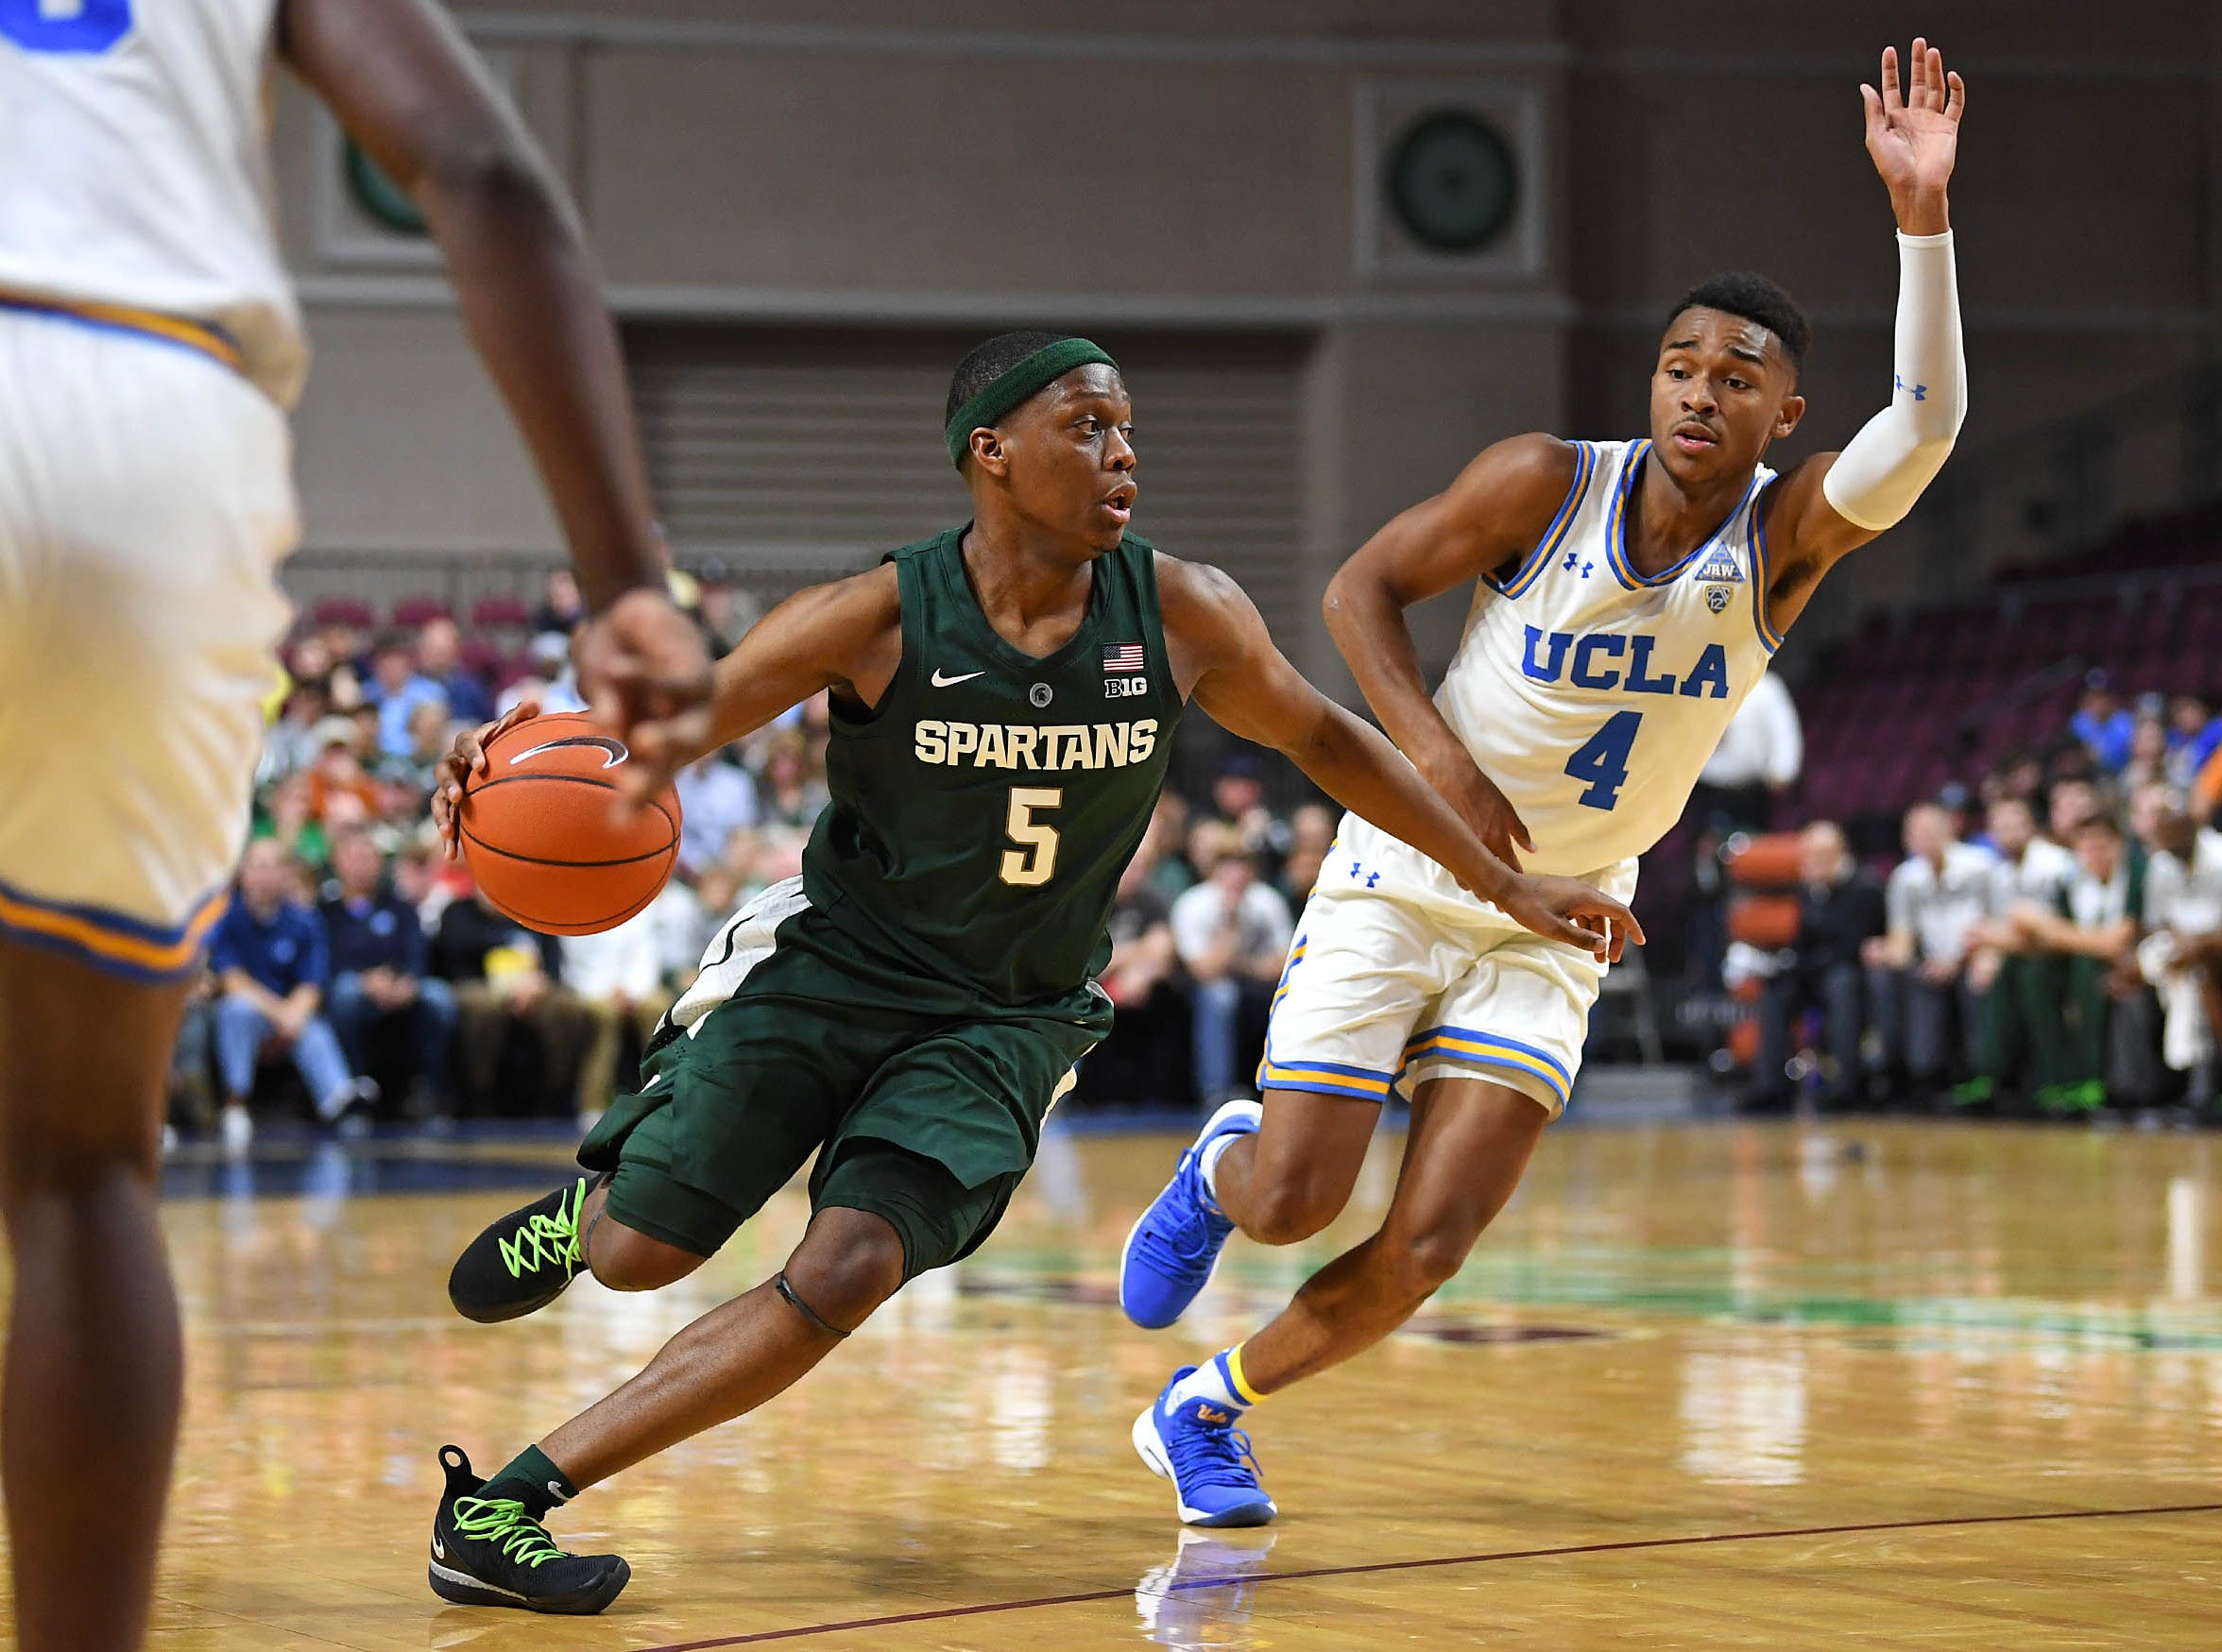 Nov 22, 2018; Las Vegas, NV, USA; Michigan State Spartans guard Cassius Winston (5) dribbles inside the defense of UCLA Bruins guard Jaylen Hands (4) during the first half at Orleans Arena. Mandatory Credit: Stephen R. Sylvanie-USA TODAY Sports